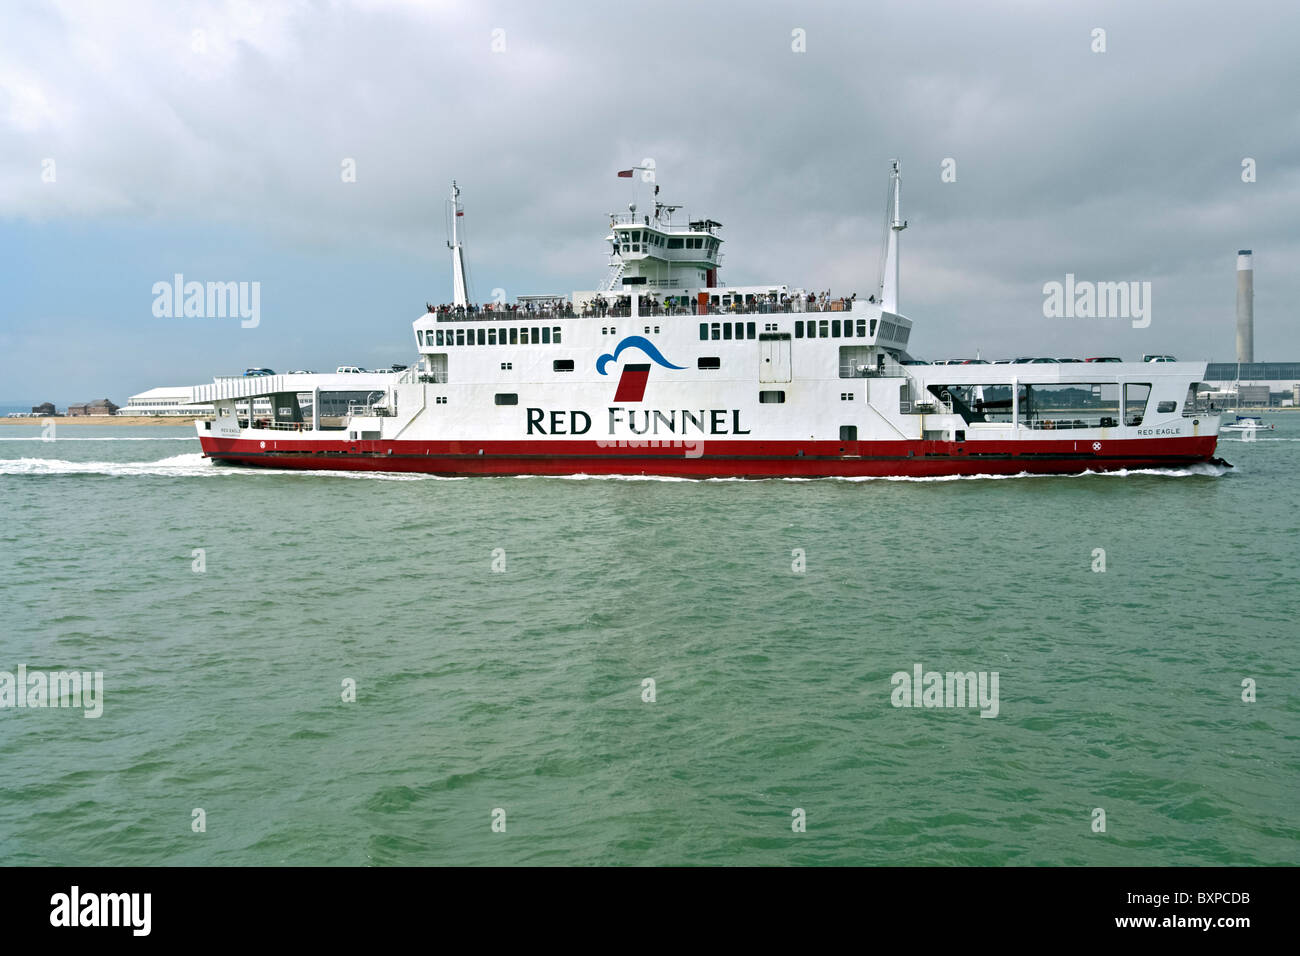 Red Funnel ferry Red Eagle in the Solent off Southampton in England - Stock Image